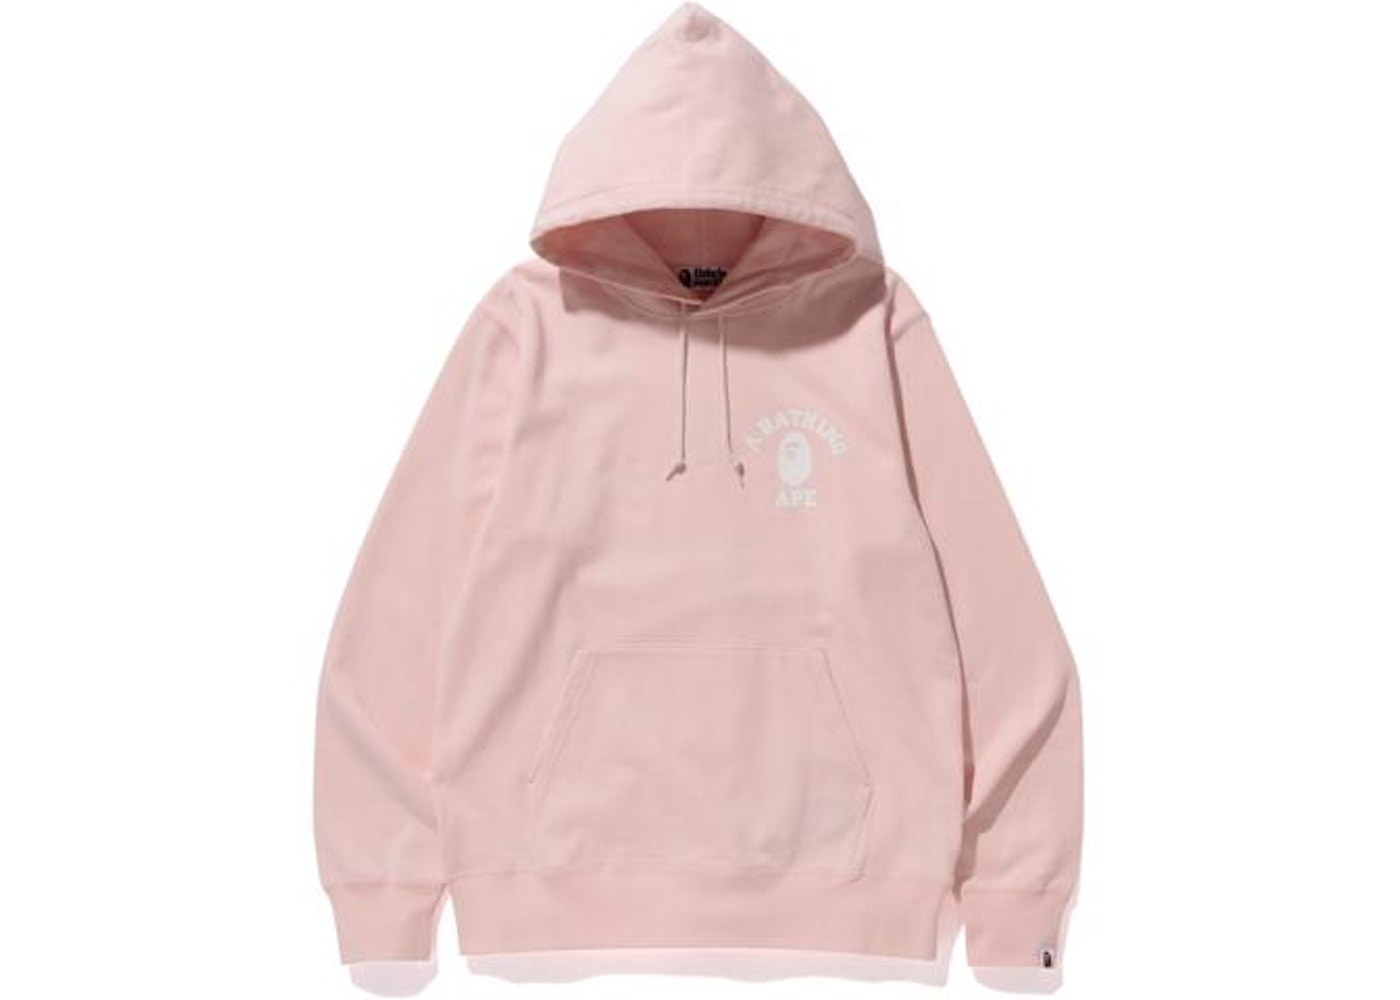 638d58636019 BAPE College Pullover Hoodie Pink -